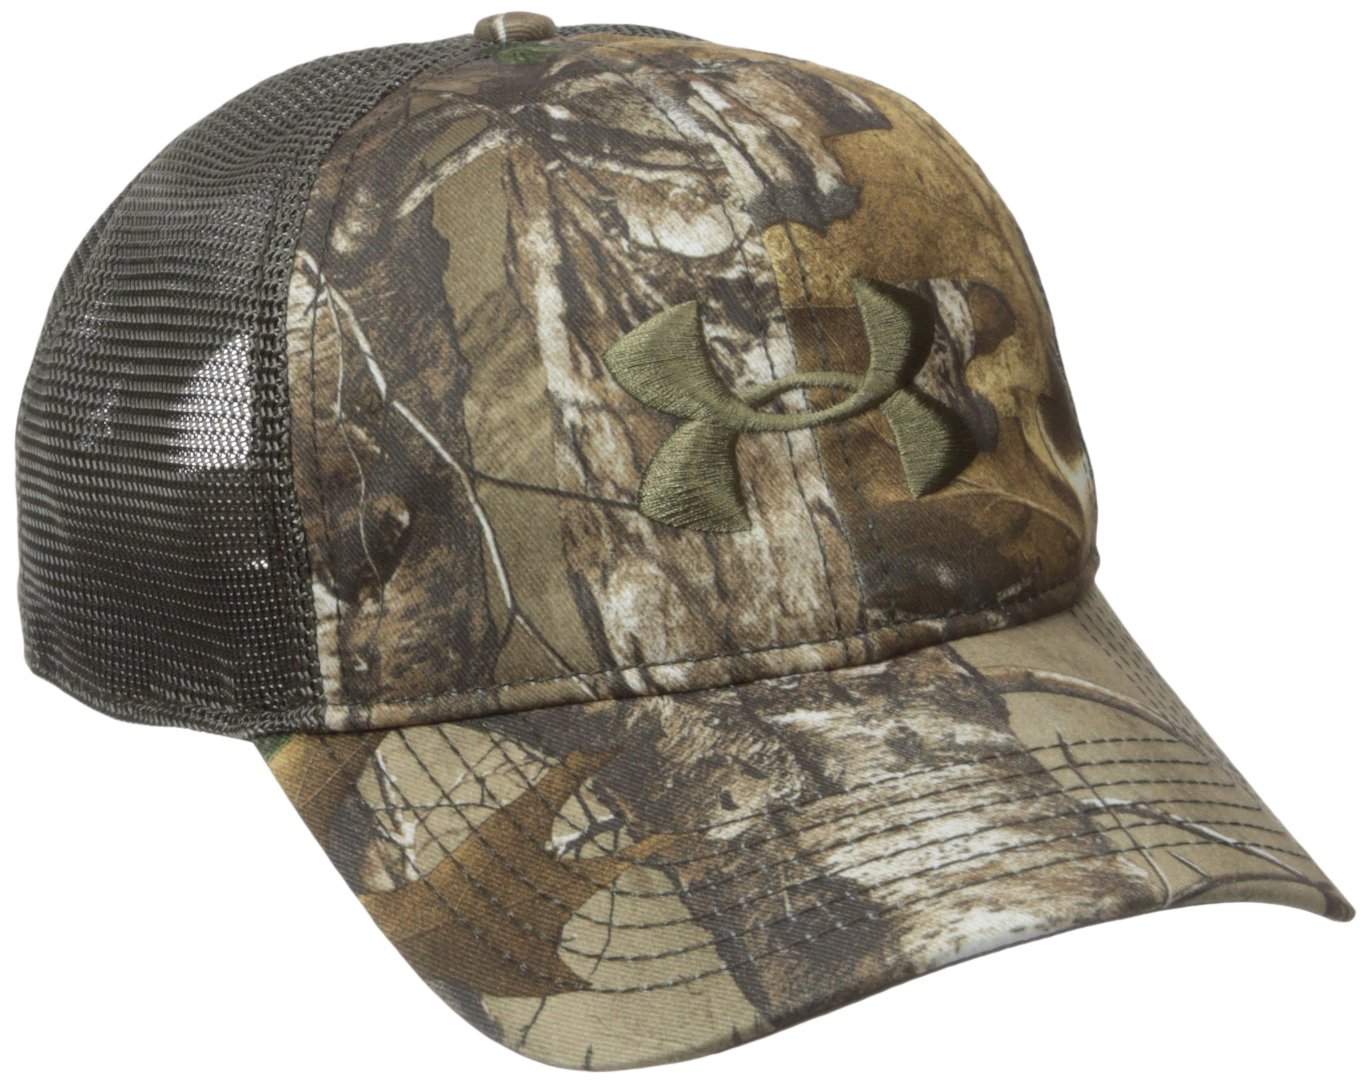 Under Armour Men's Camo Mesh Back Cap, Realtree Ap-Xtra (947)/Bayou, One Size by Under Armour